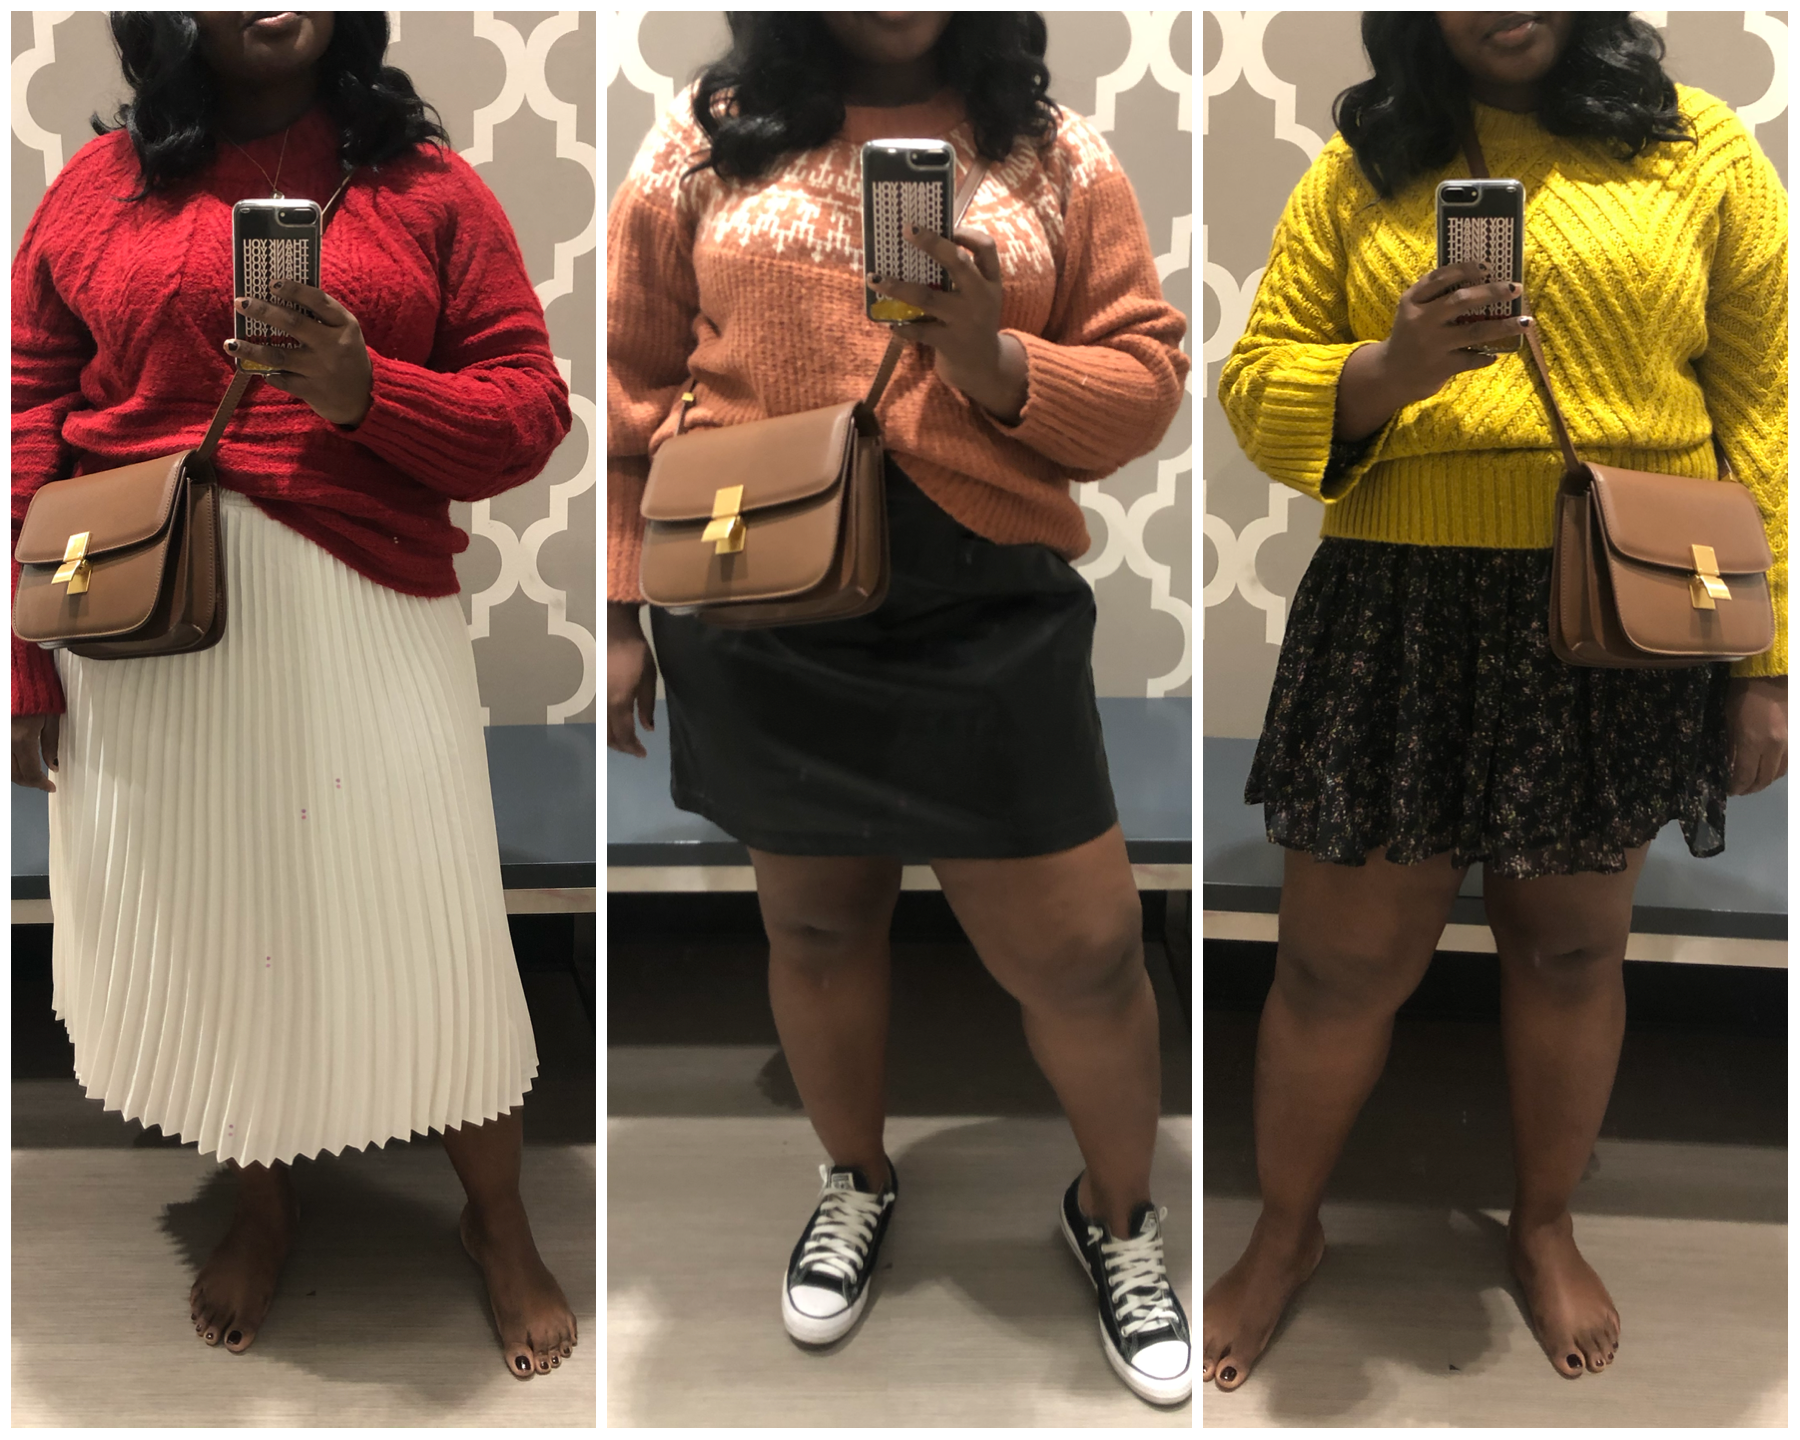 sweater tryon session target by chichi o. from supplechic